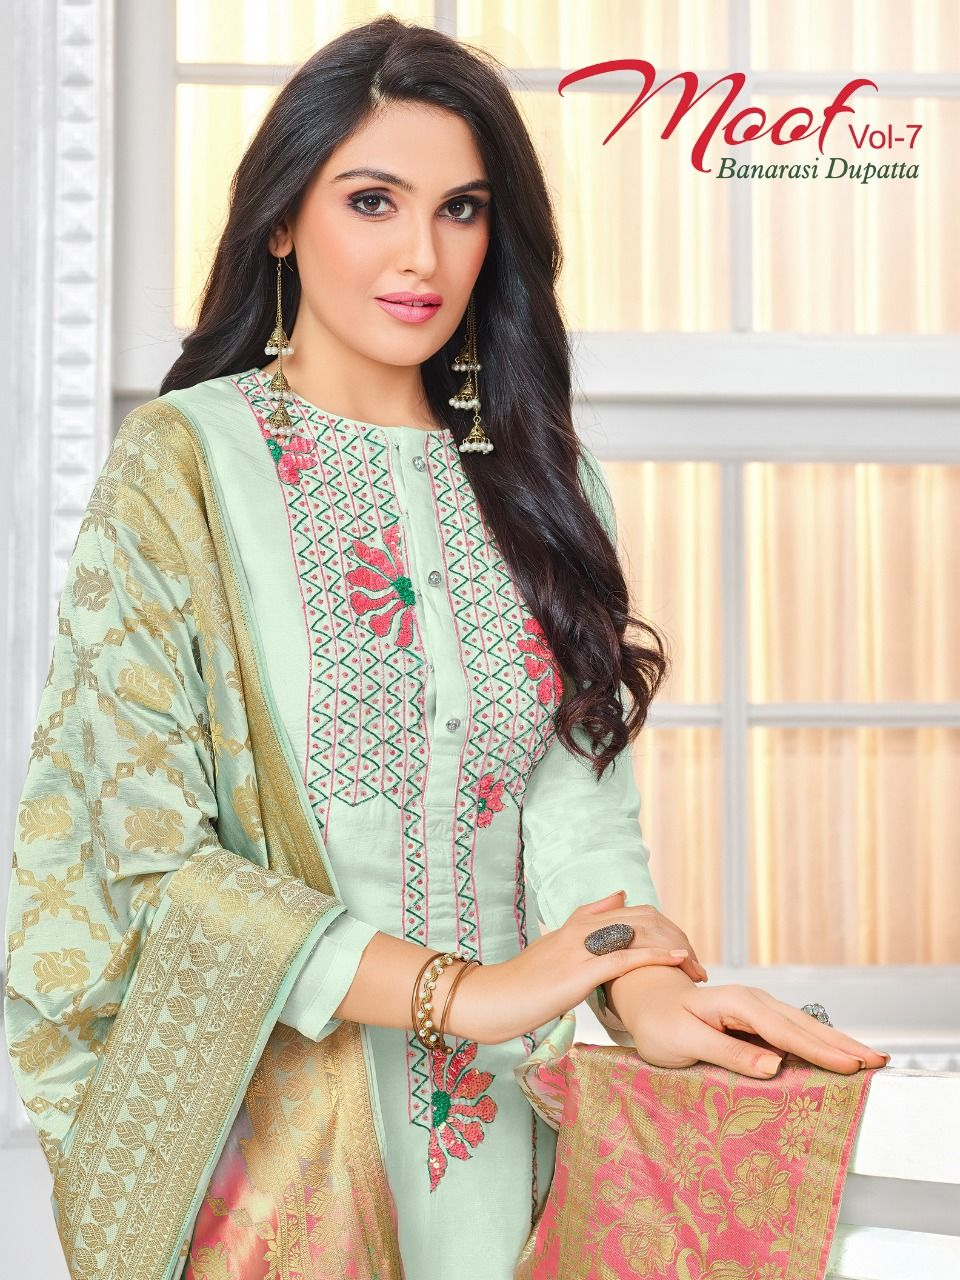 982e5eea70 Moof vol 7 Banarasi Dupatta Suits Wholesale(6 pc catalog ...